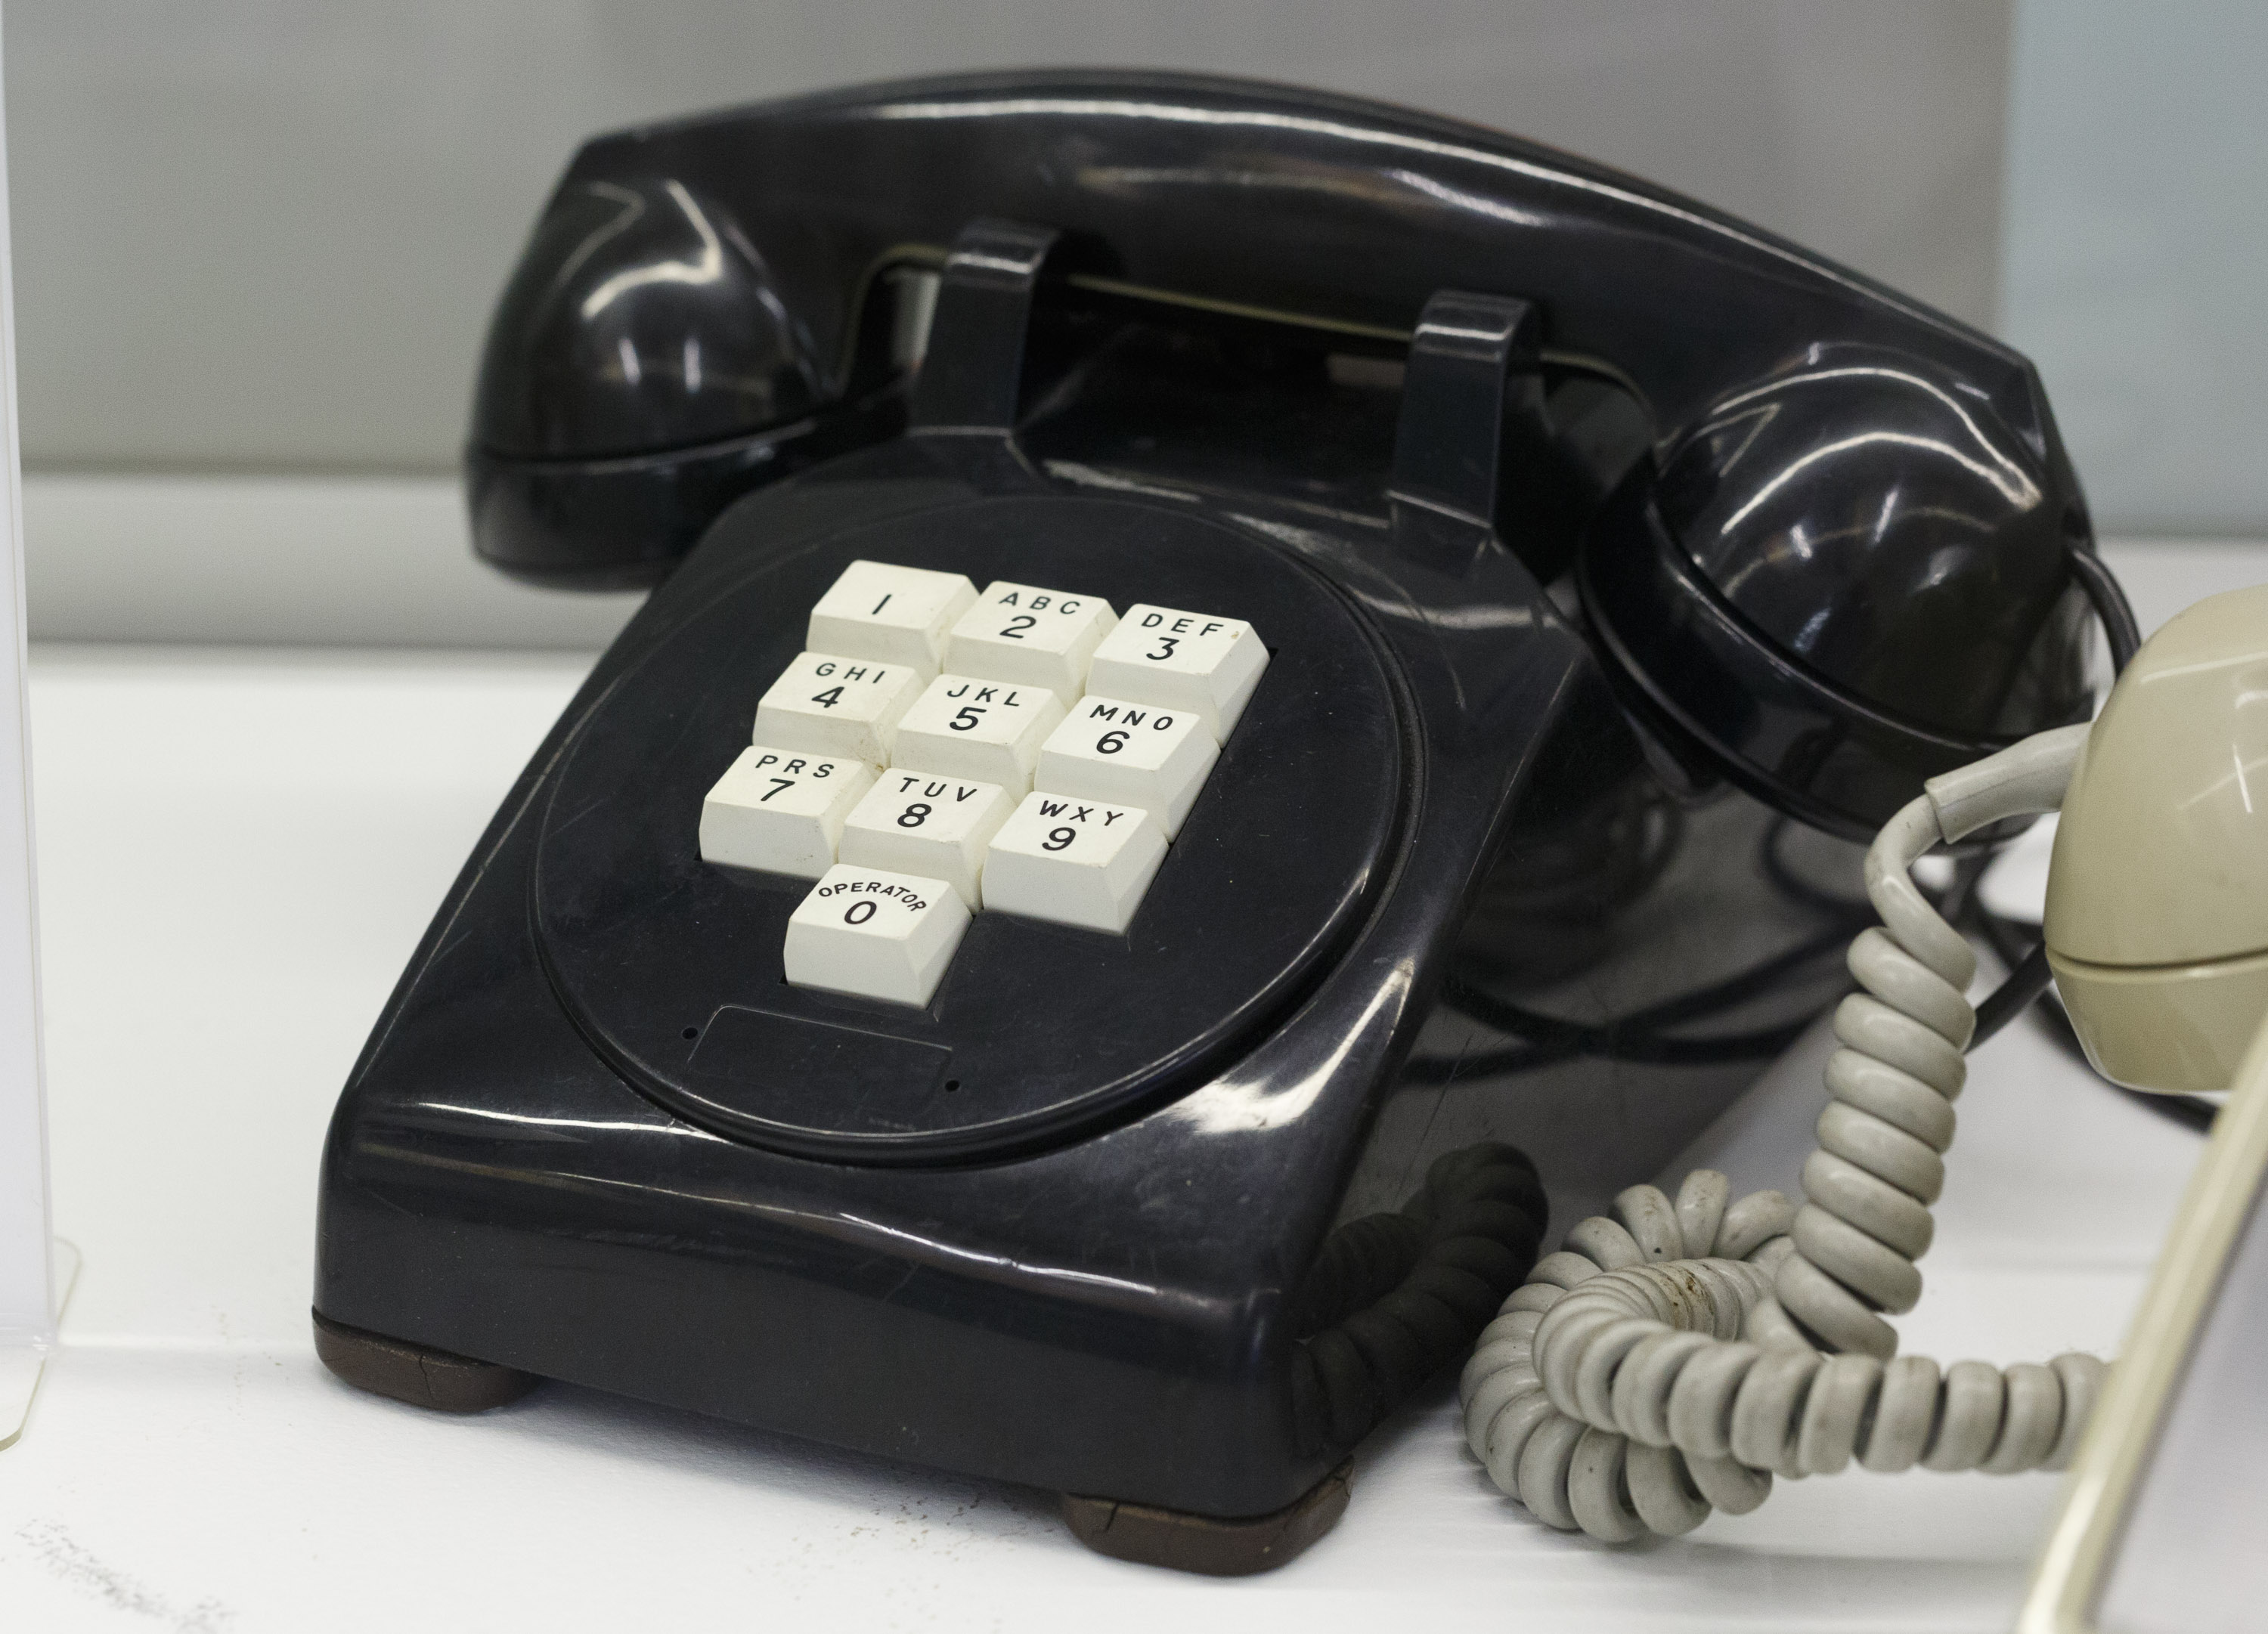 Nokia Bell Labs touch-tone prototype